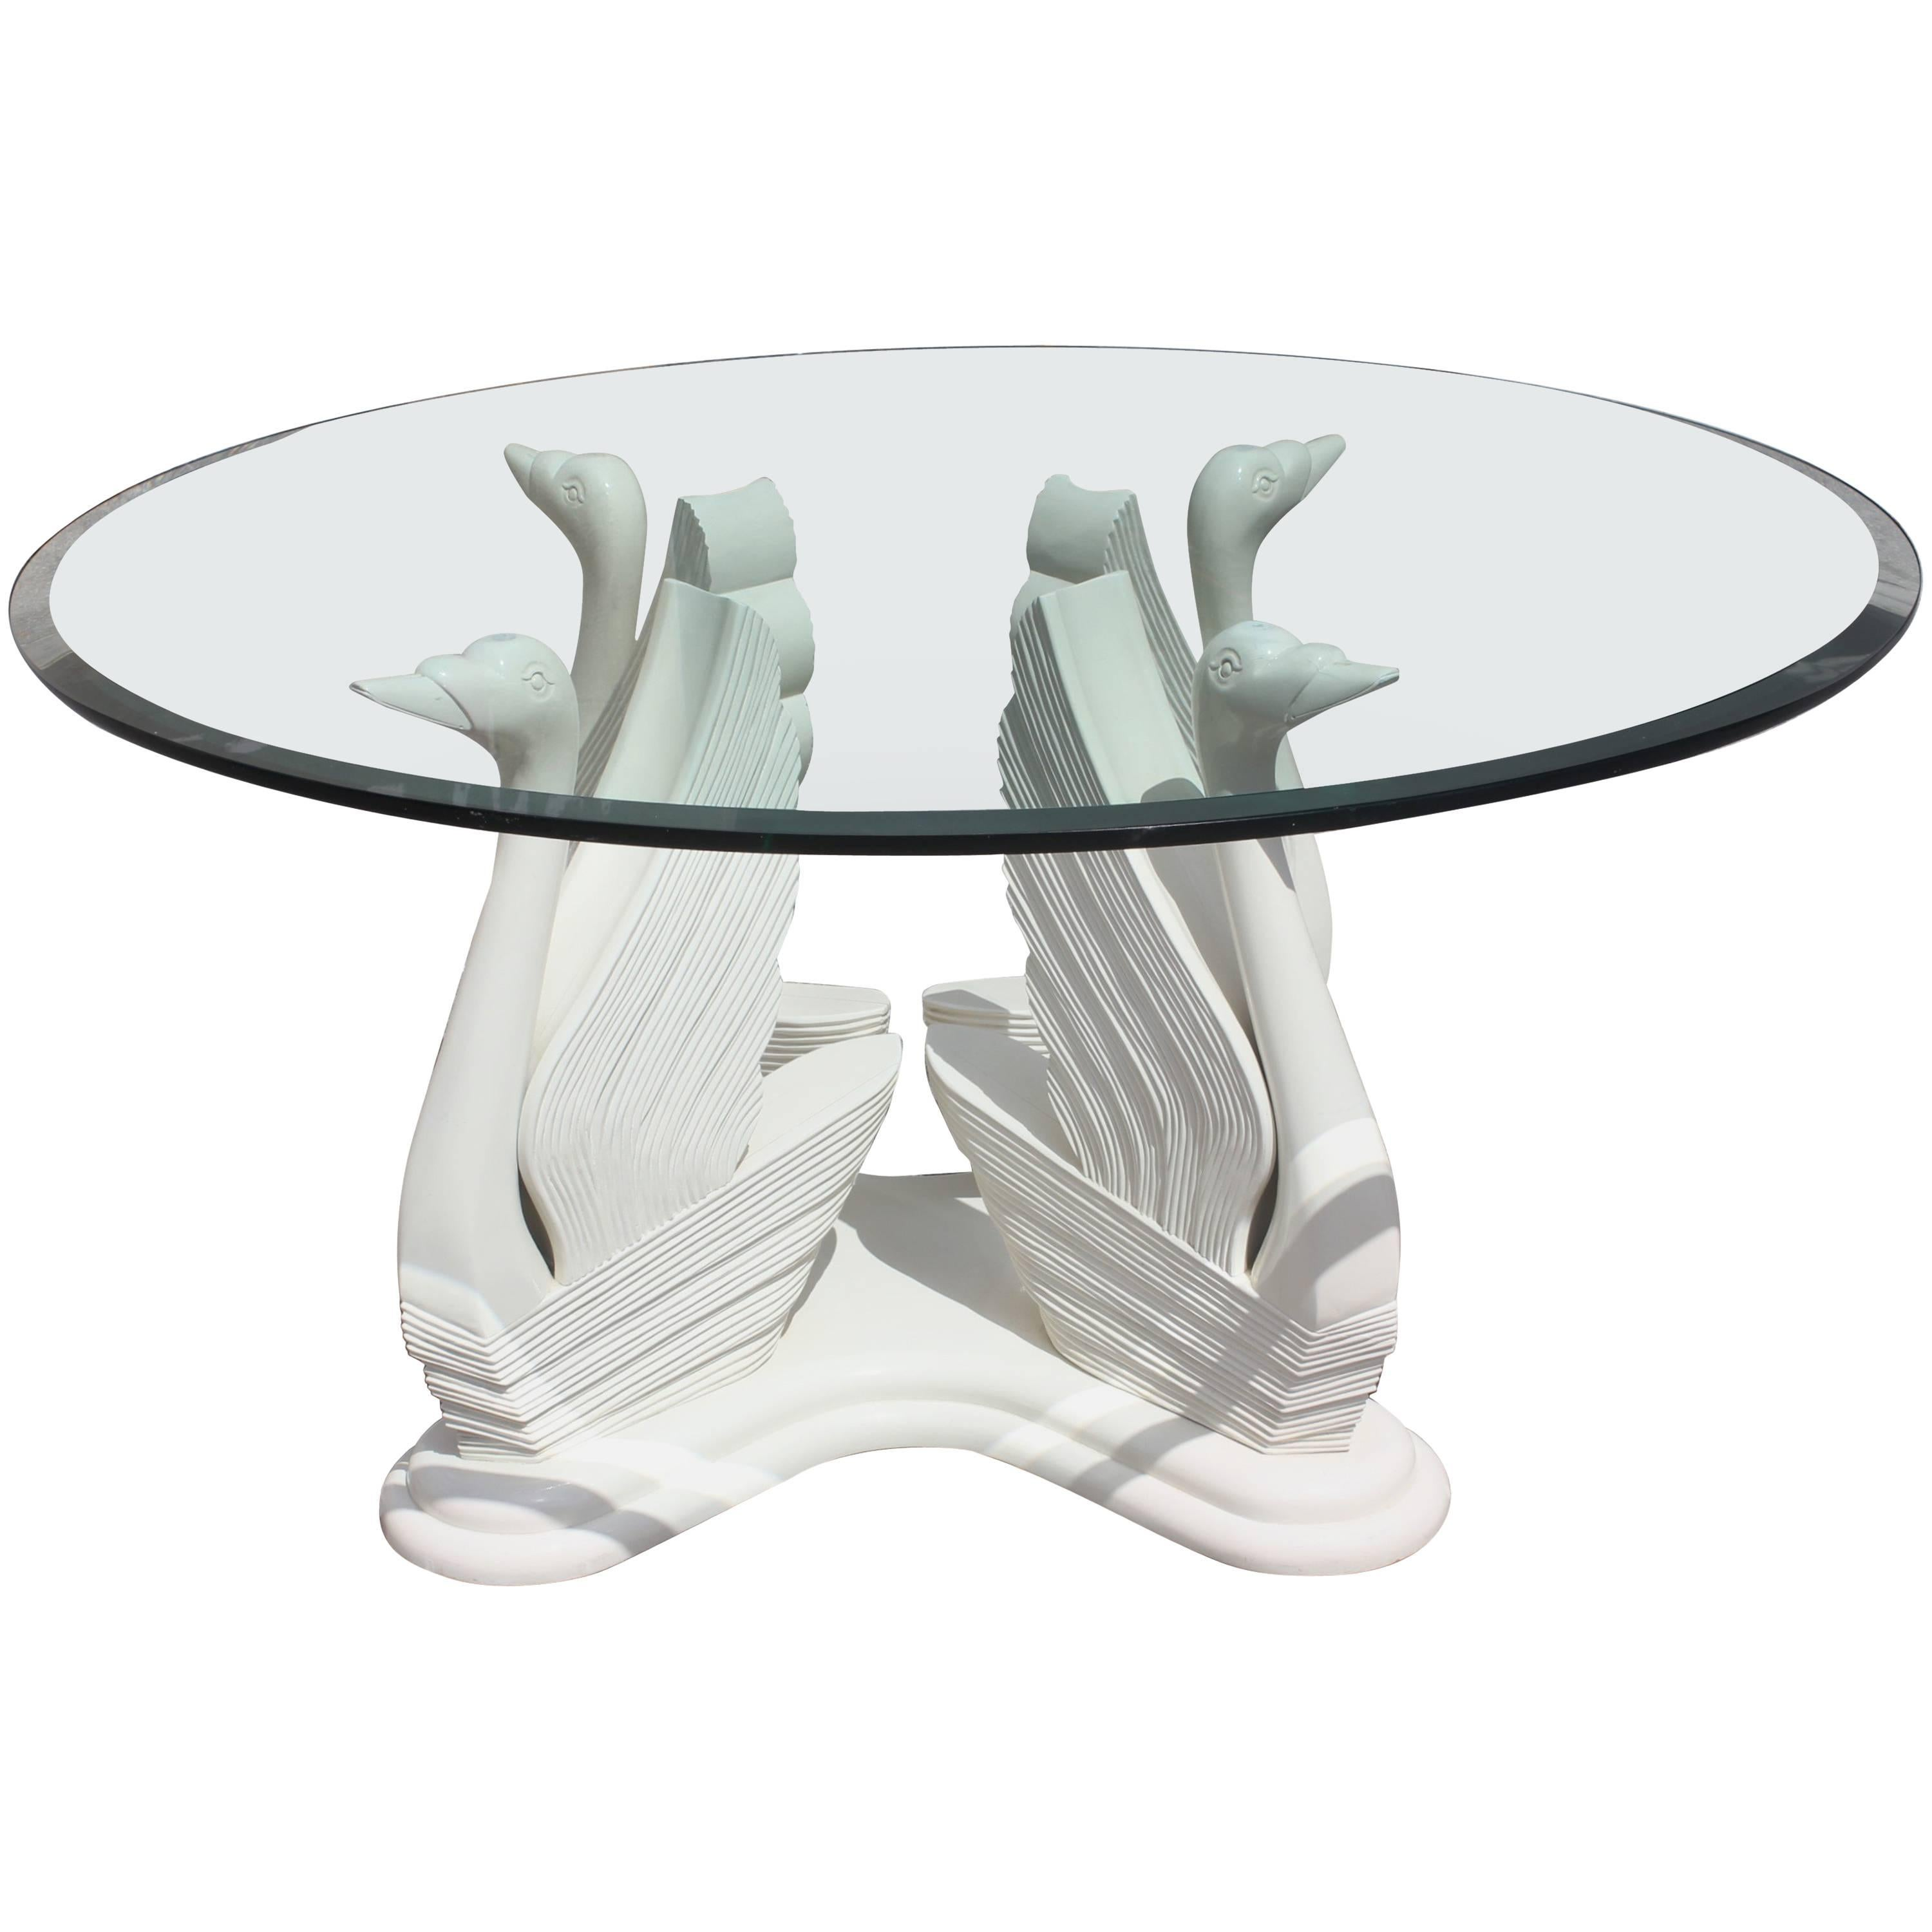 348b2daf5f8e Mid-Century Modern Wood Swan Ivory Finish Round Dining Table Glass Top at  1stdibs